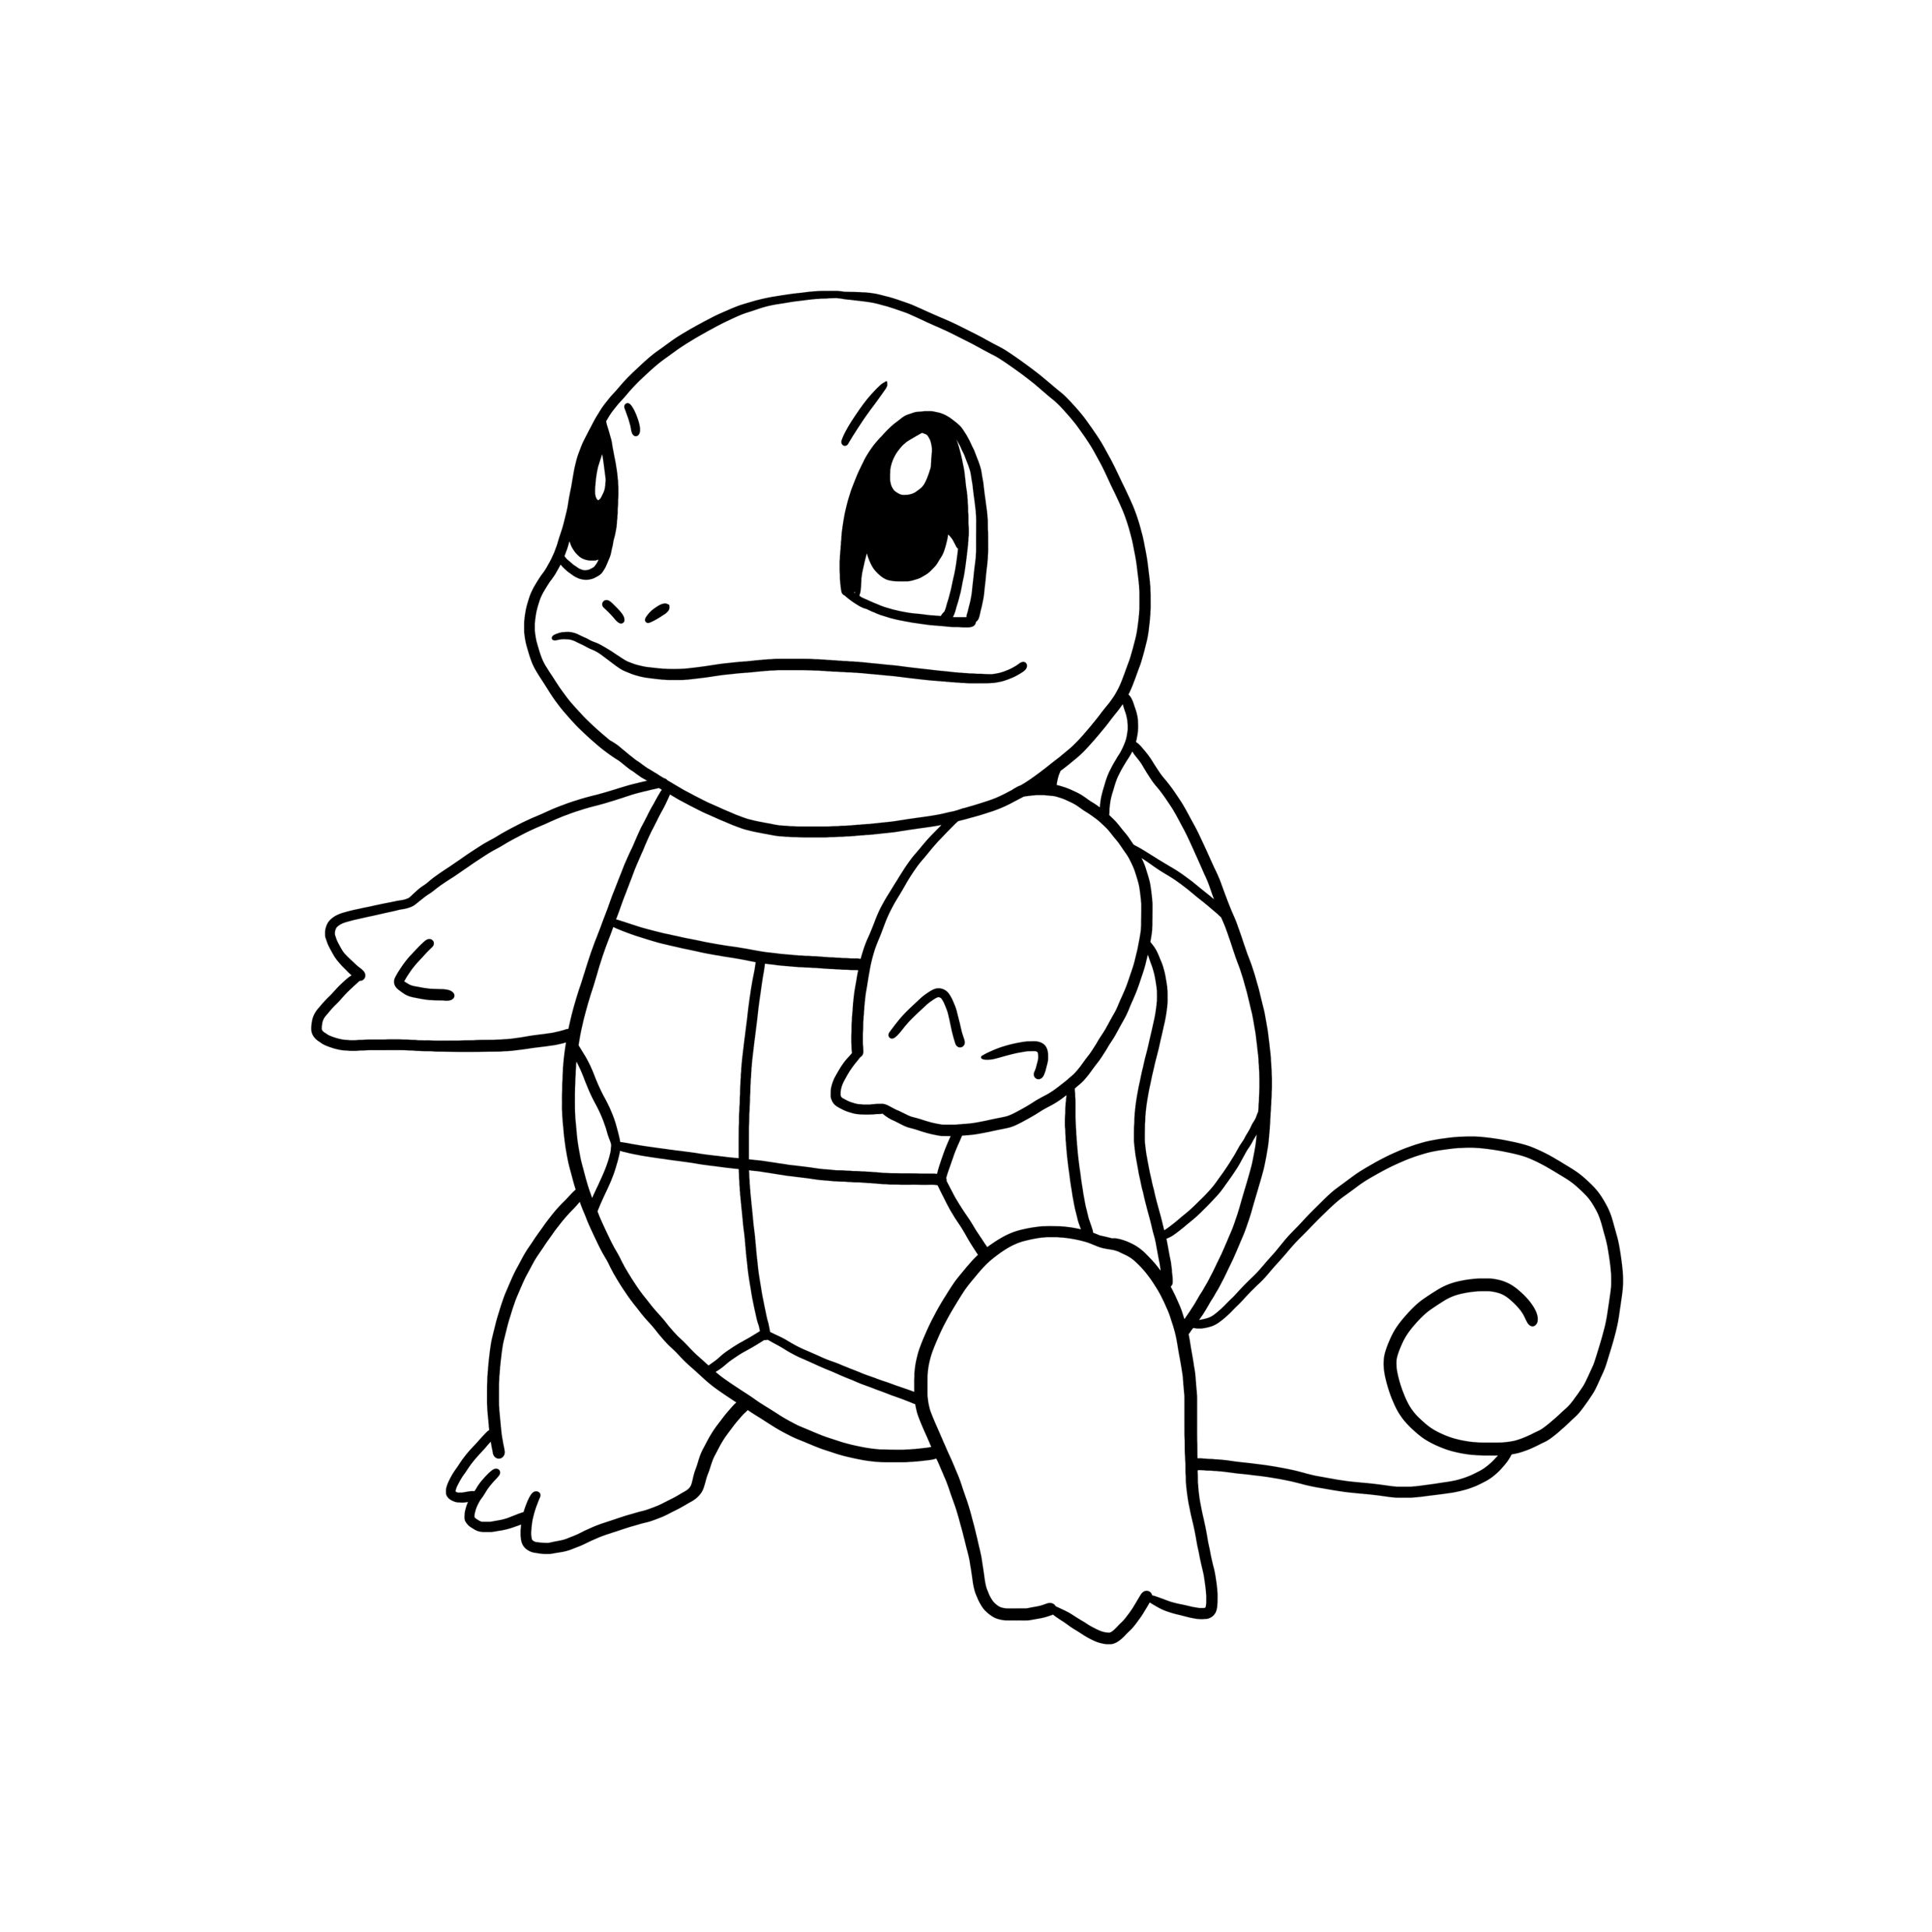 Pokemon Drawing Squirtle Sketch Coloring Page Coloring Home In